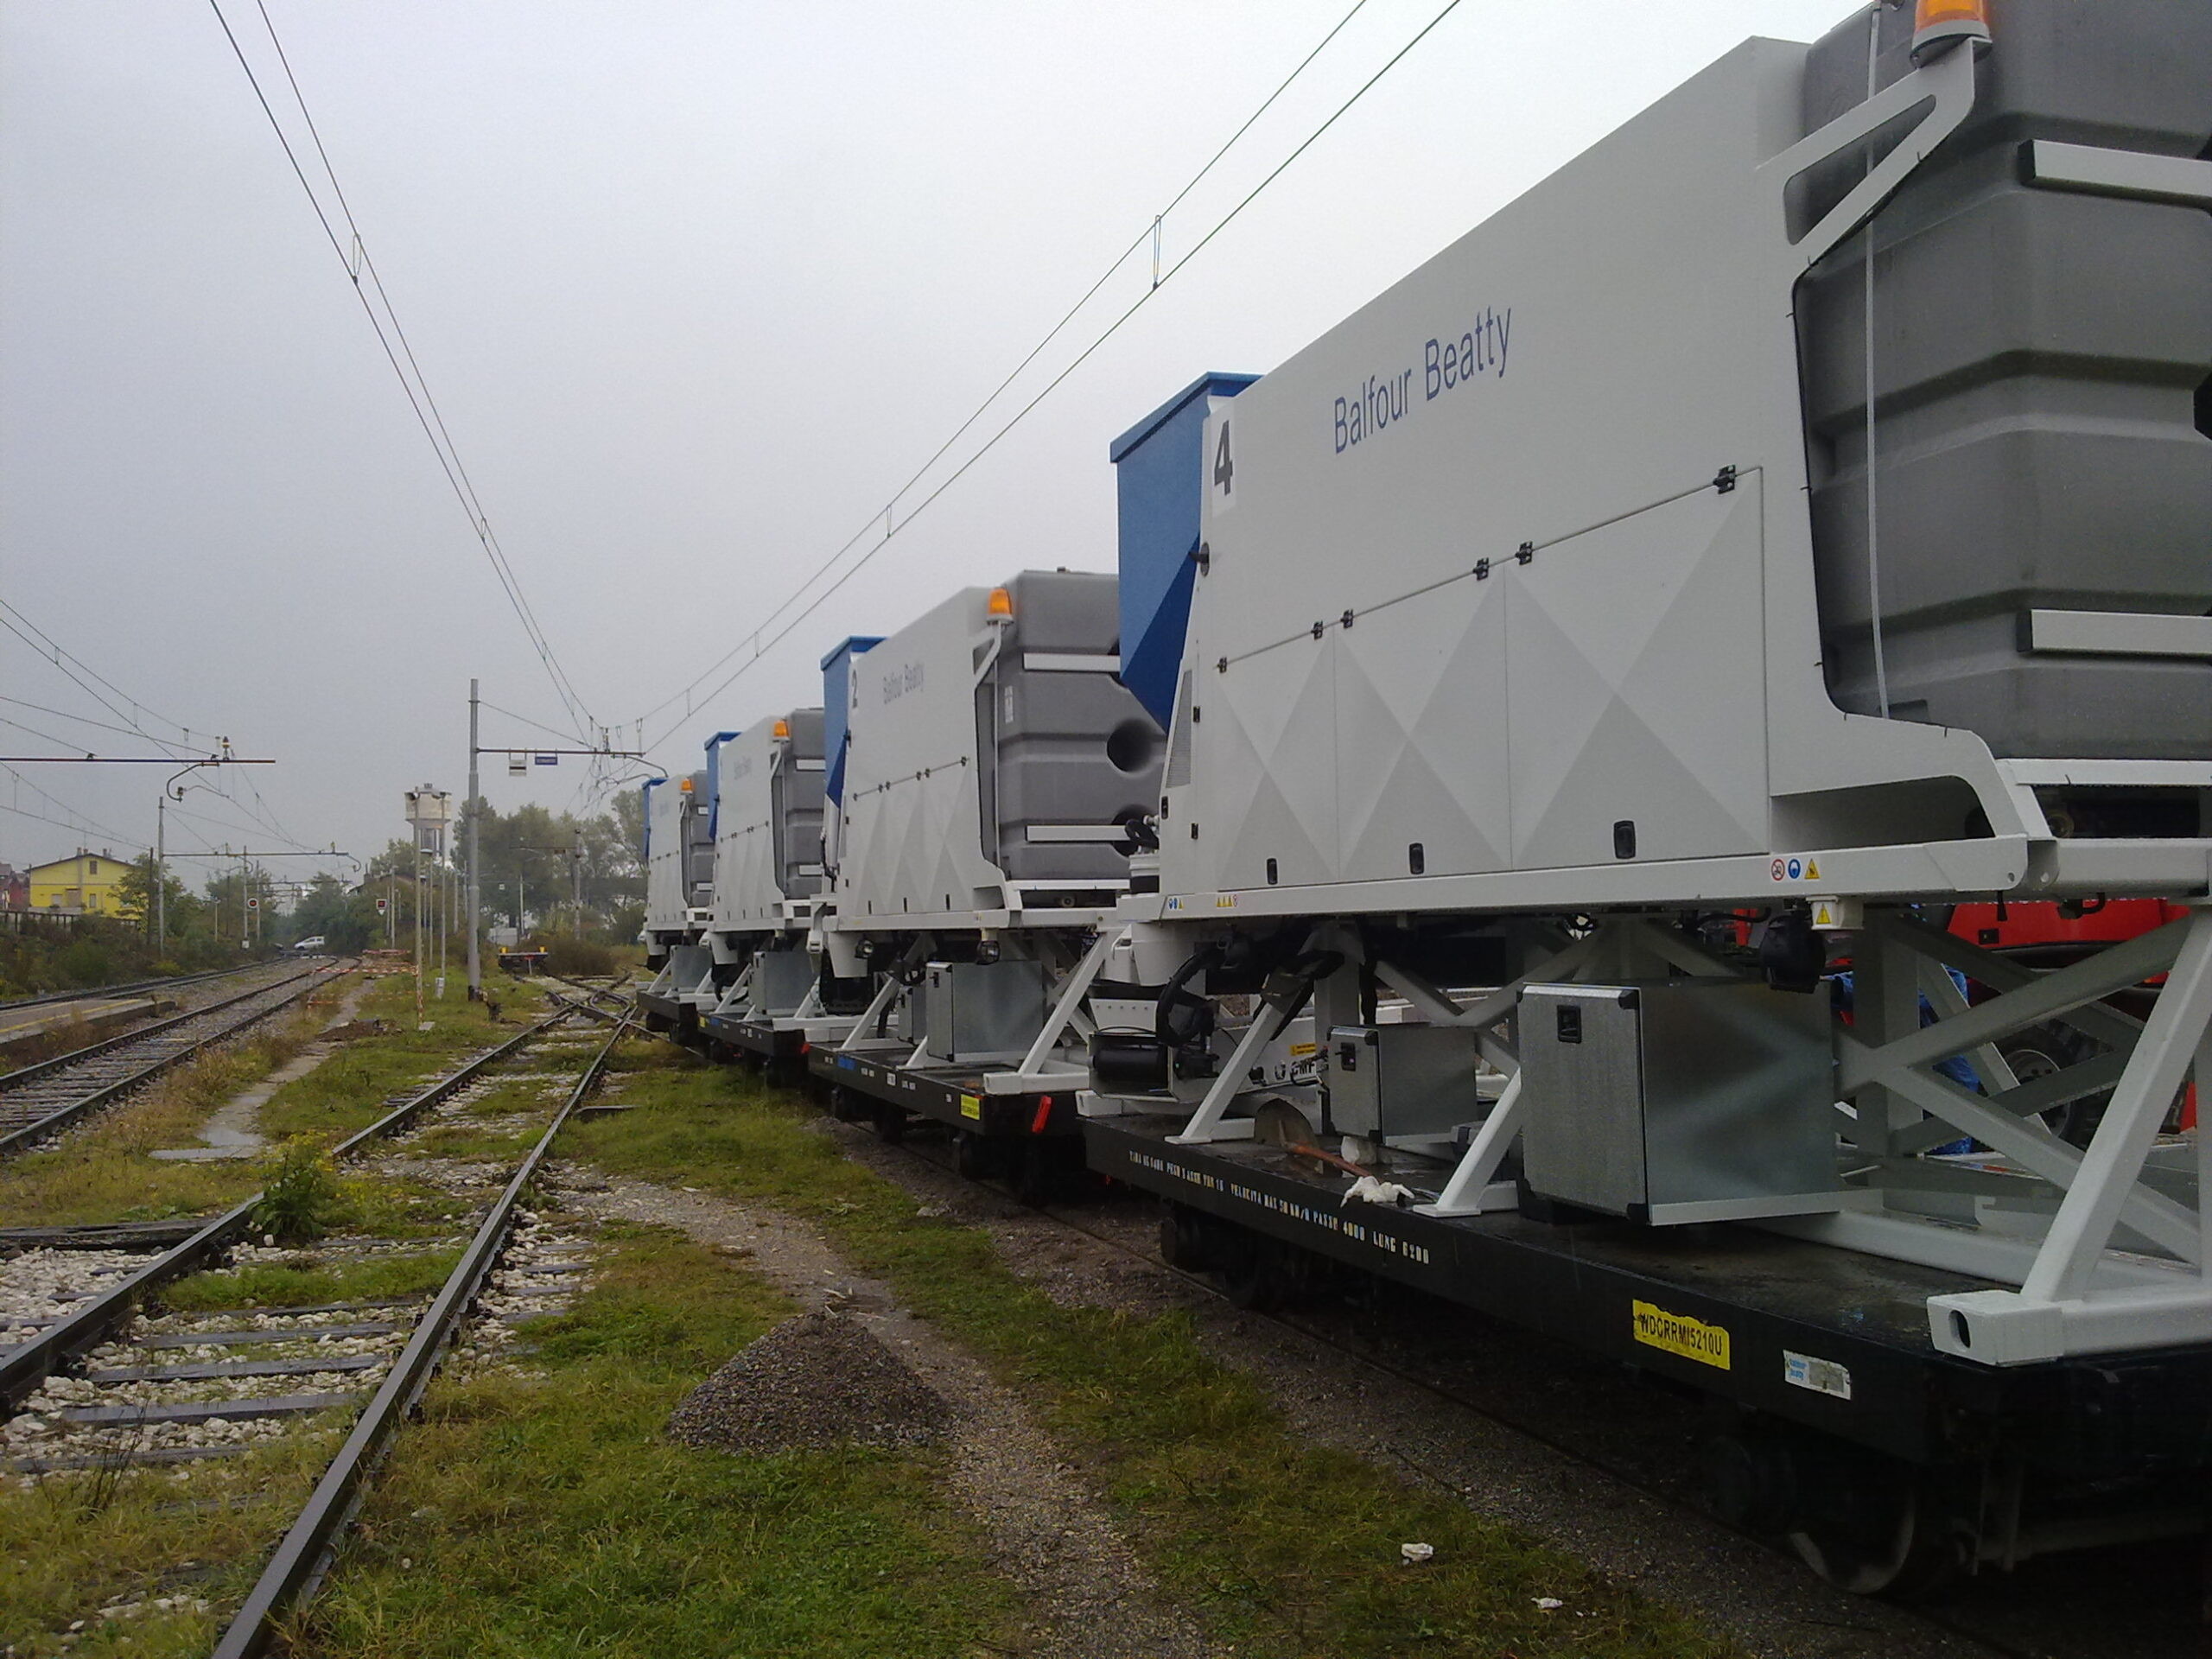 Railway mobile plants for Balfour Beatty